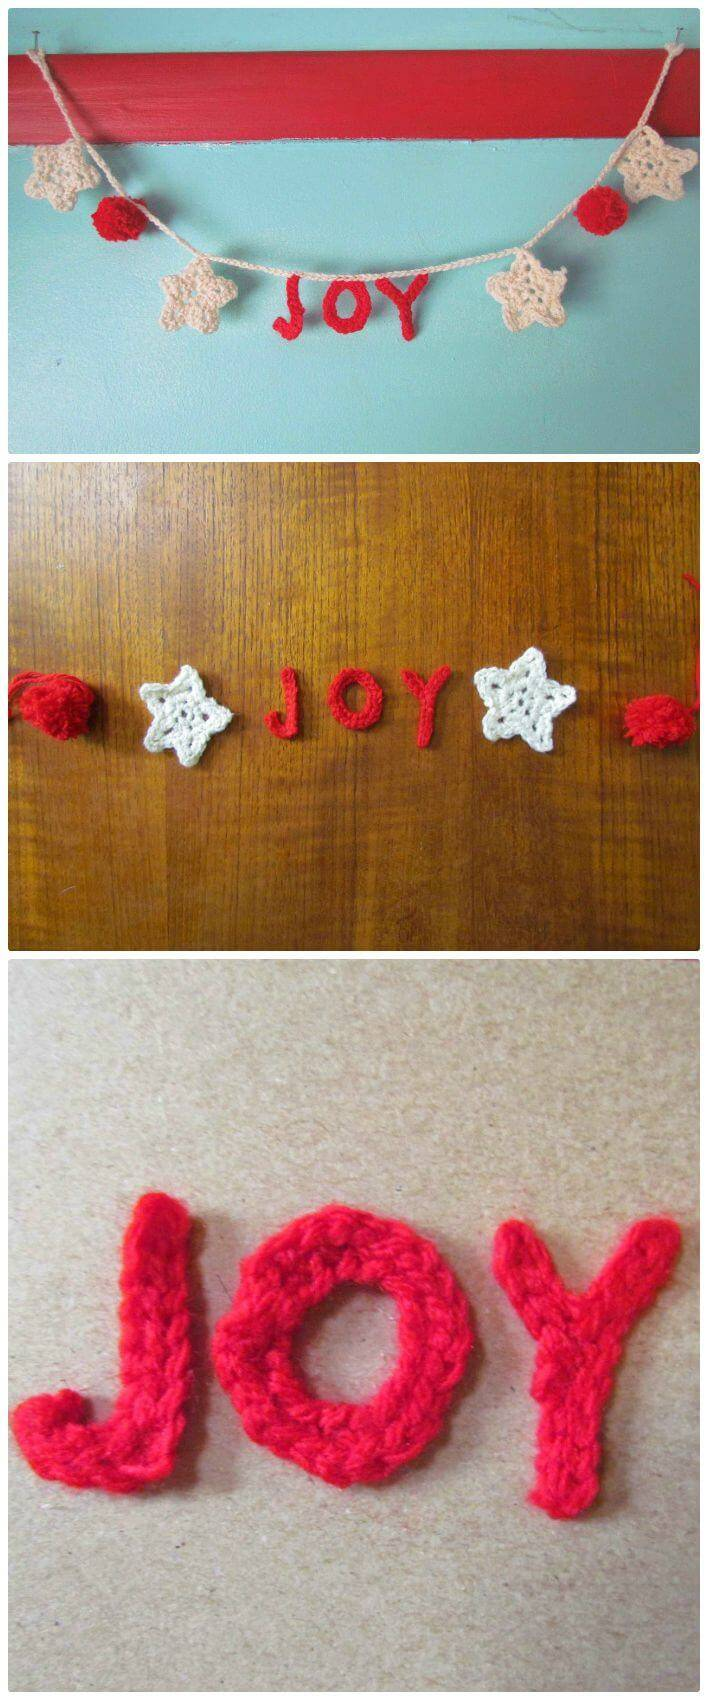 Easy Free Christmas Garland with Crochet Words